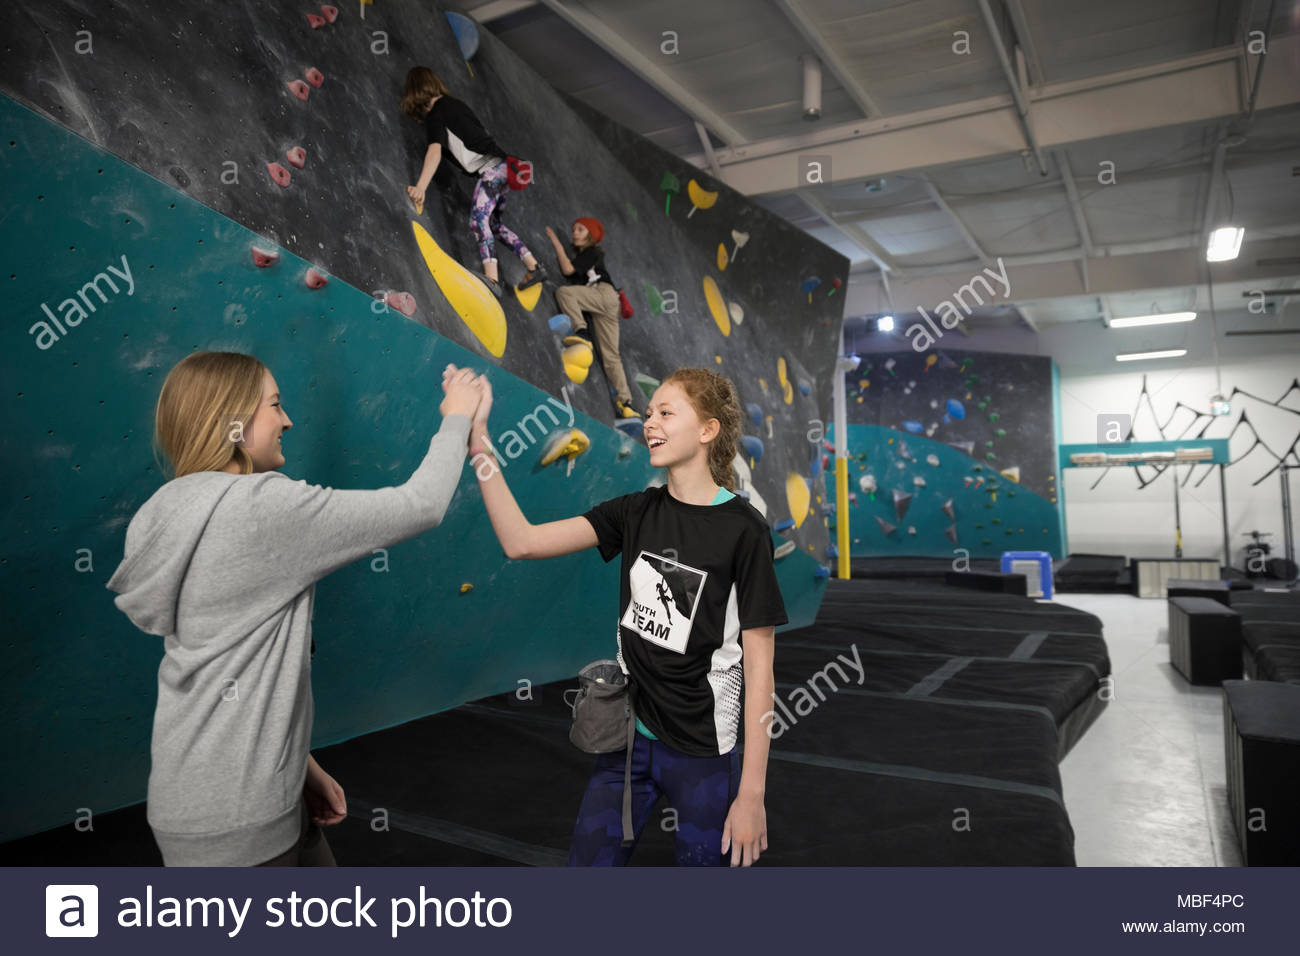 Female instructor and girl rock climbing student high-fiving at climbing wall in climbing gym - Stock Image